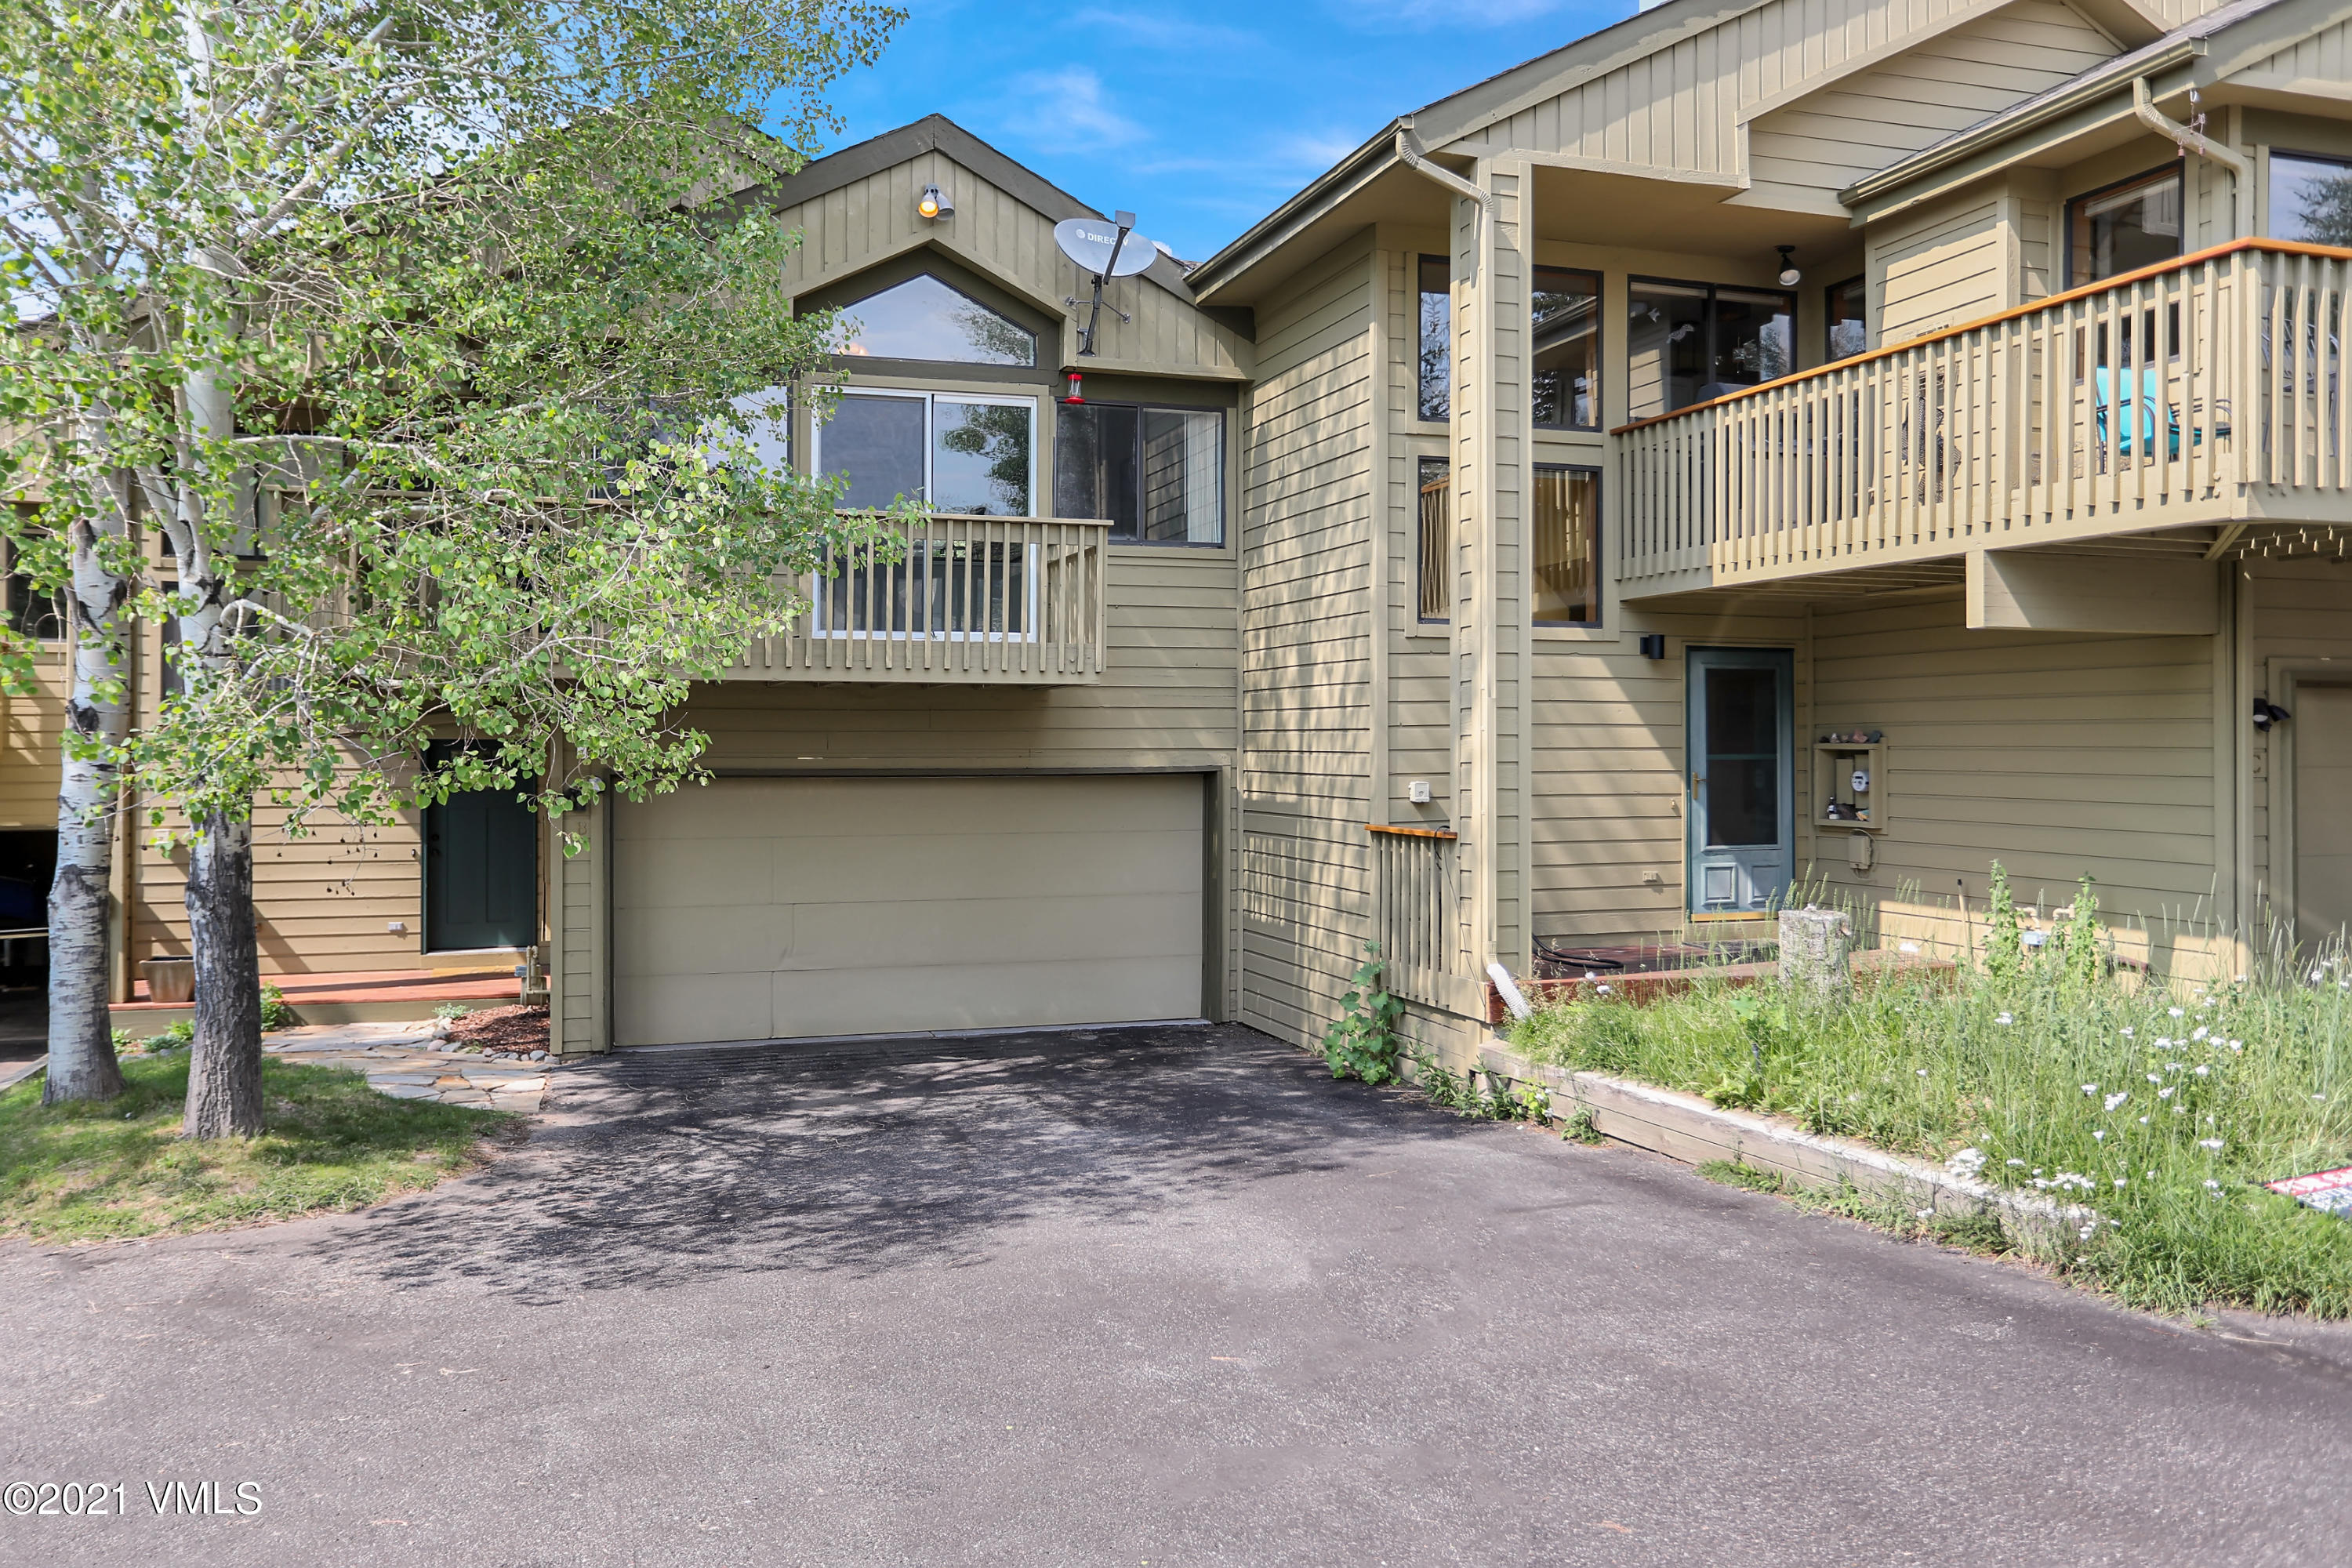 Come home to this beautiful, quiet oasis just minutes from I-70, Avon, and Beaver Creek Resort.  Enjoy gorgeous views from the living room and front deck, or relax in a hammock in your private aspen grove in the back yard. Plenty of room for all your toys in the 2 car garage and bonus storage area off the back of the garage. Top floor features open kitchen, living room & dining area as well as the master bedroom with ensuite bath. Middle floor has 2 bedrooms and a full bath, as well as access to the garage and back patio.  Basement level is a large bonus space with lots of potential uses and has it's own exterior entrance from the back yard.